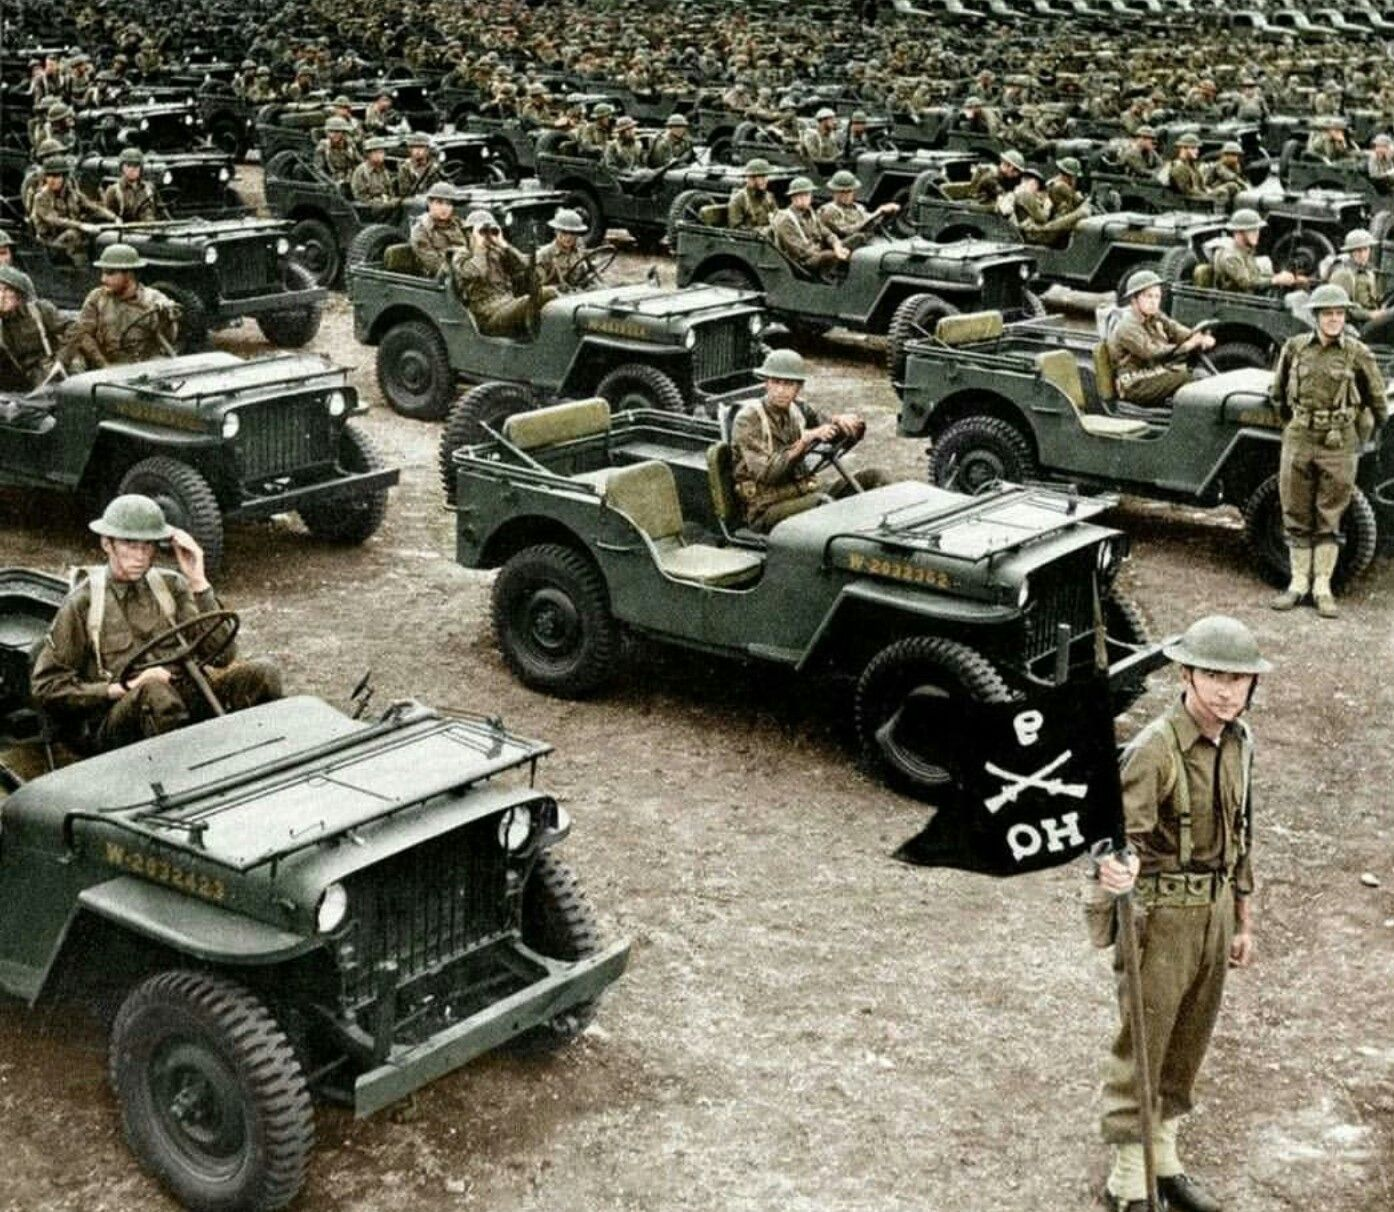 Jeeps For Sale Columbus Ohio >> Pin by chuck england on jeep | Veículos militares, Jipes, Jipe